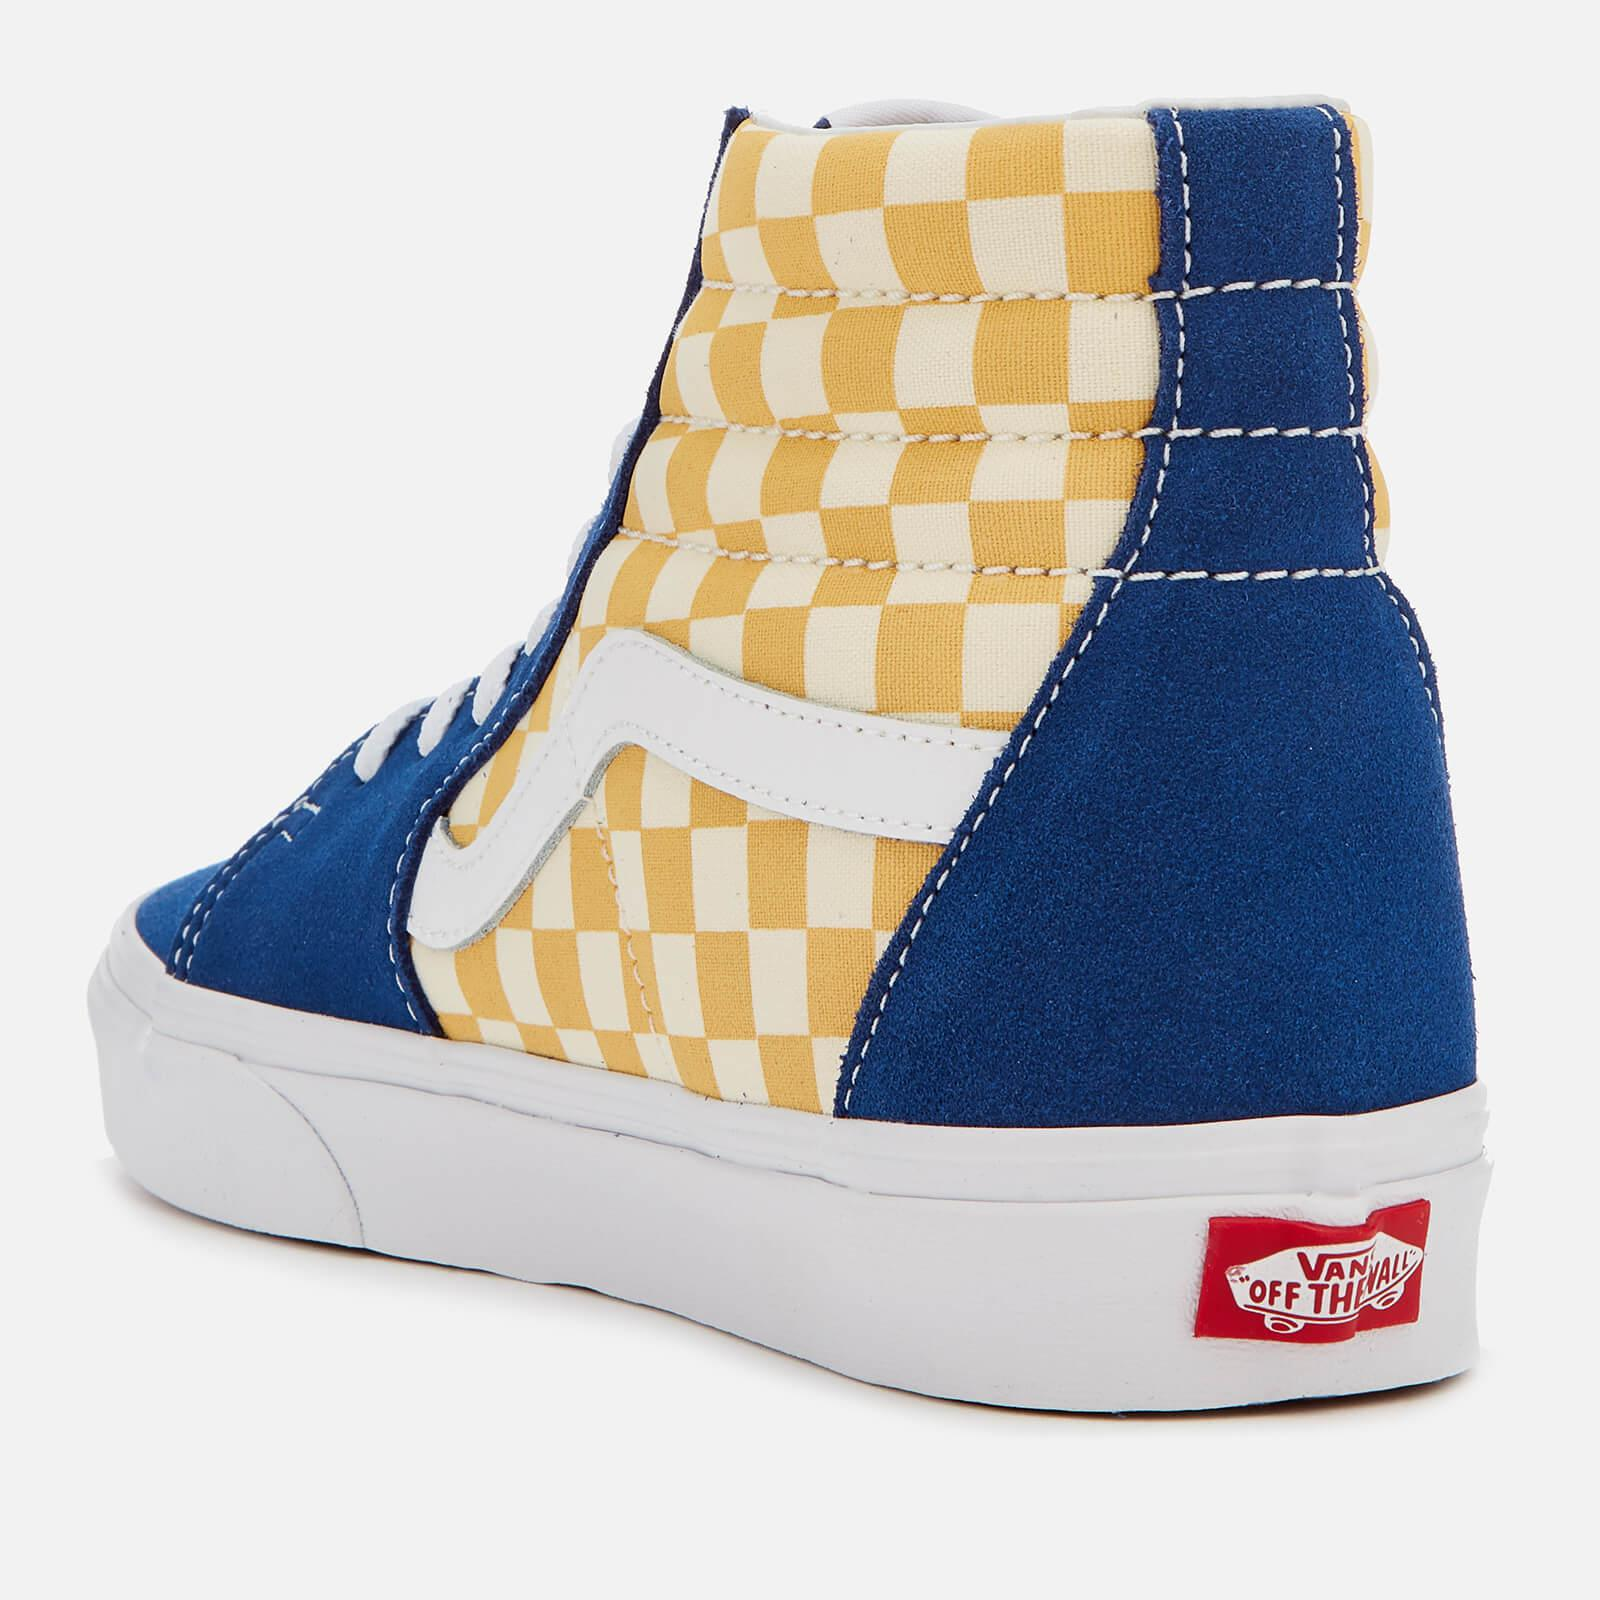 bf3c322ba9a54c Vans Sk8-hi Bmx Checkerboard Trainers in Blue for Men - Lyst